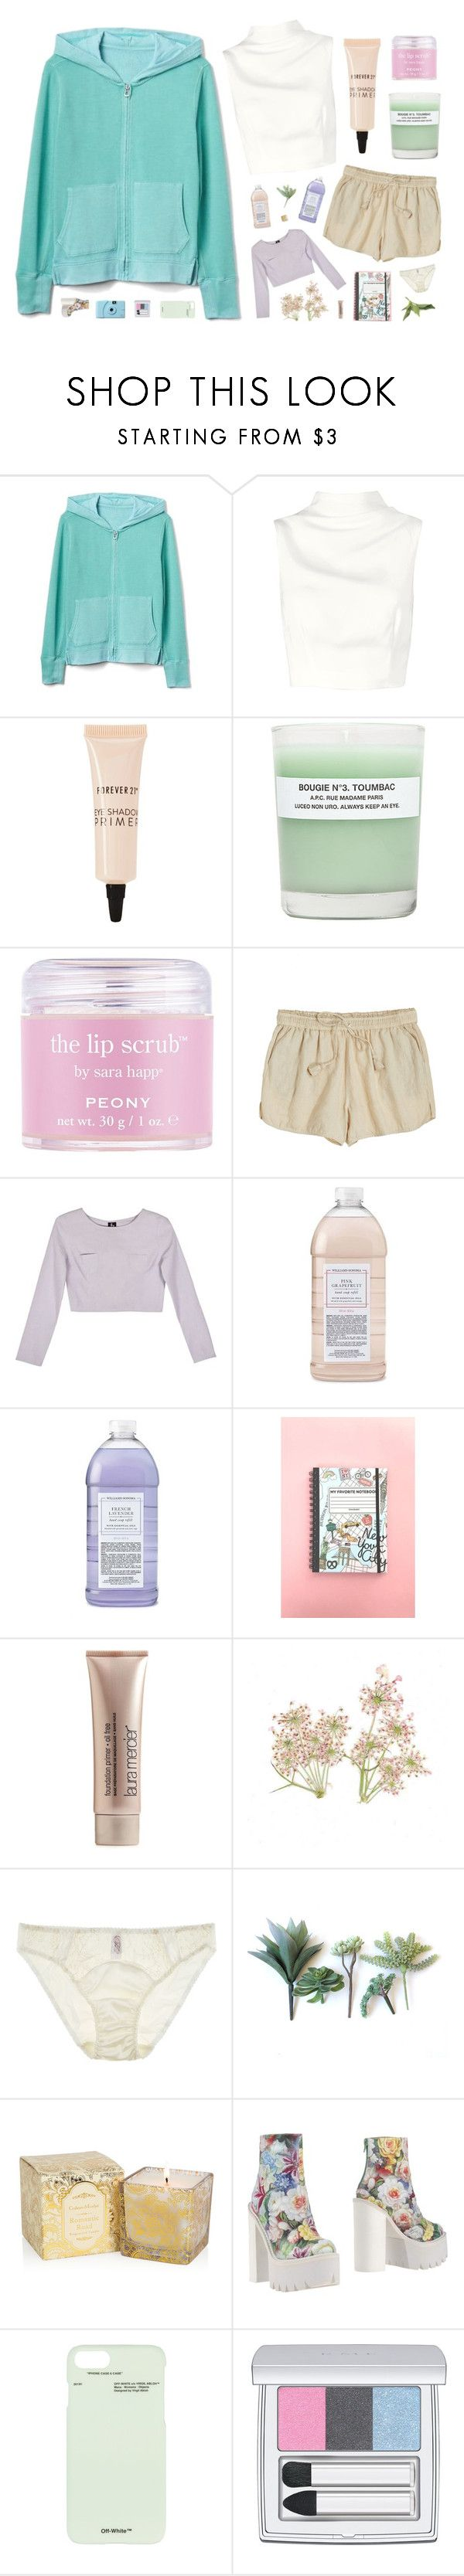 """""""810"""" by glitterals ❤ liked on Polyvore featuring Gap, Keepsake the Label, Forever 21, A.P.C., Sara Happ, Calypso St. Barth, Samantha Pleet, Williams-Sonoma, Laura Mercier and Fleur of England"""